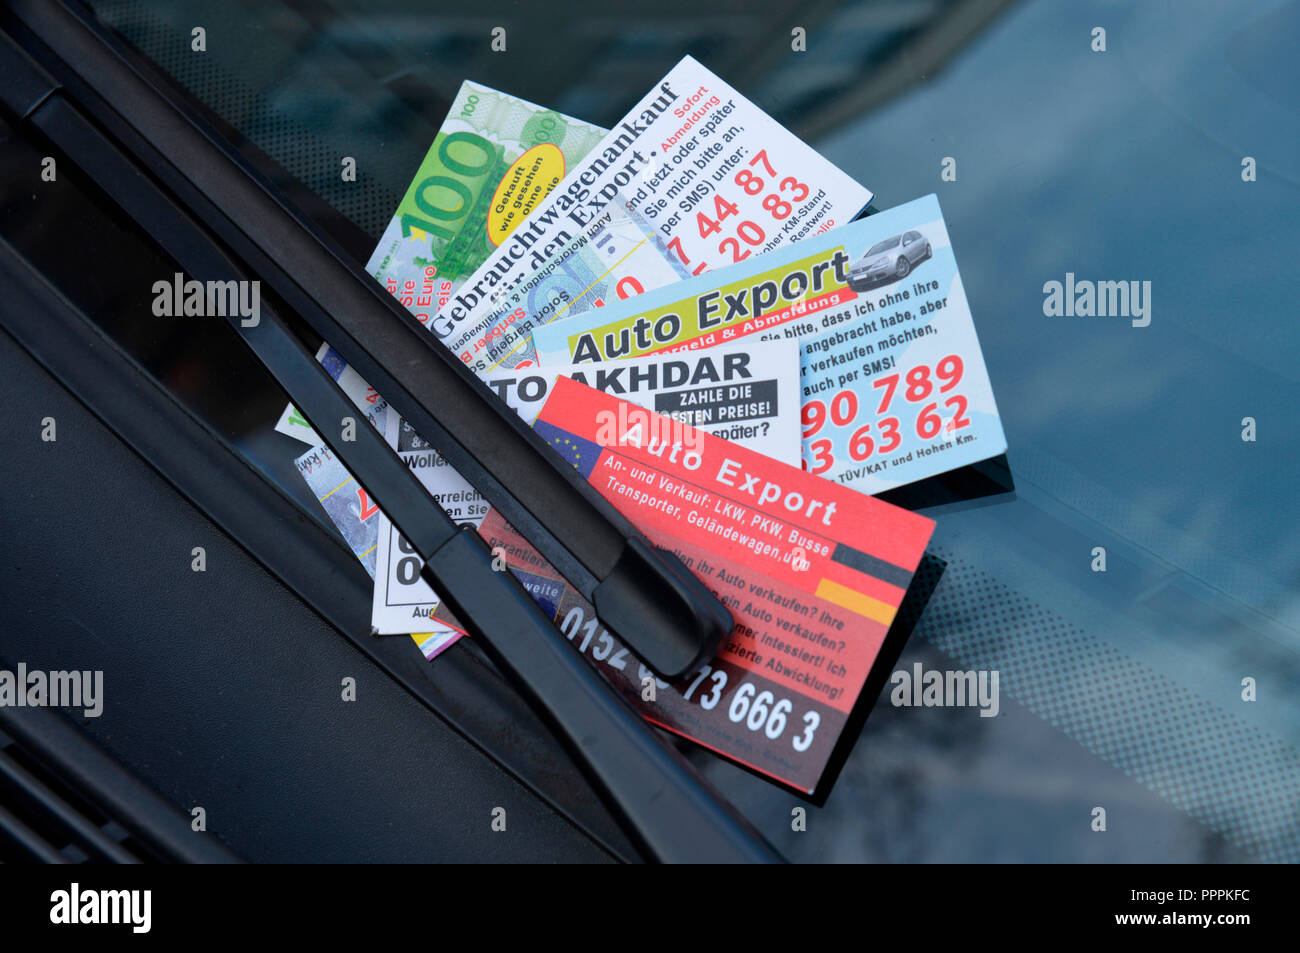 business card, car export, car purchase - Stock Image